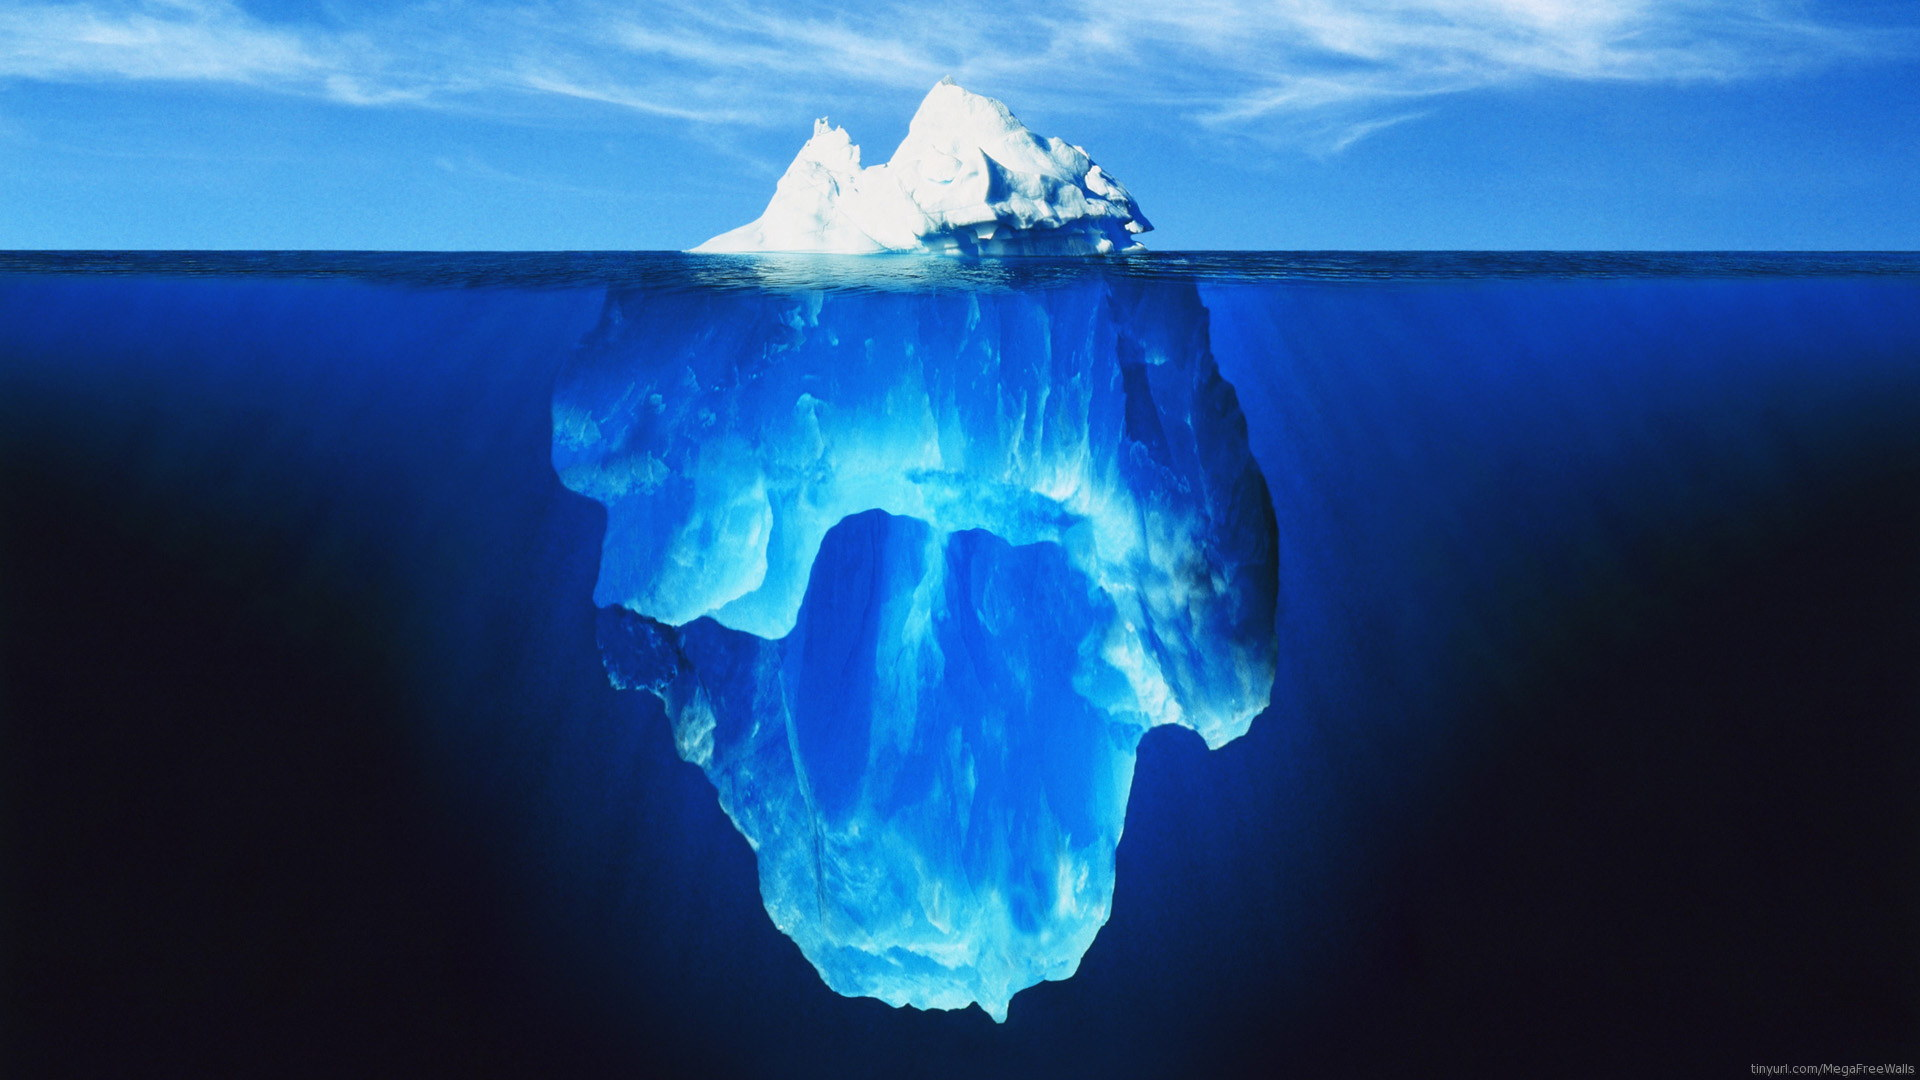 Iceberg clipart #7, Download drawings